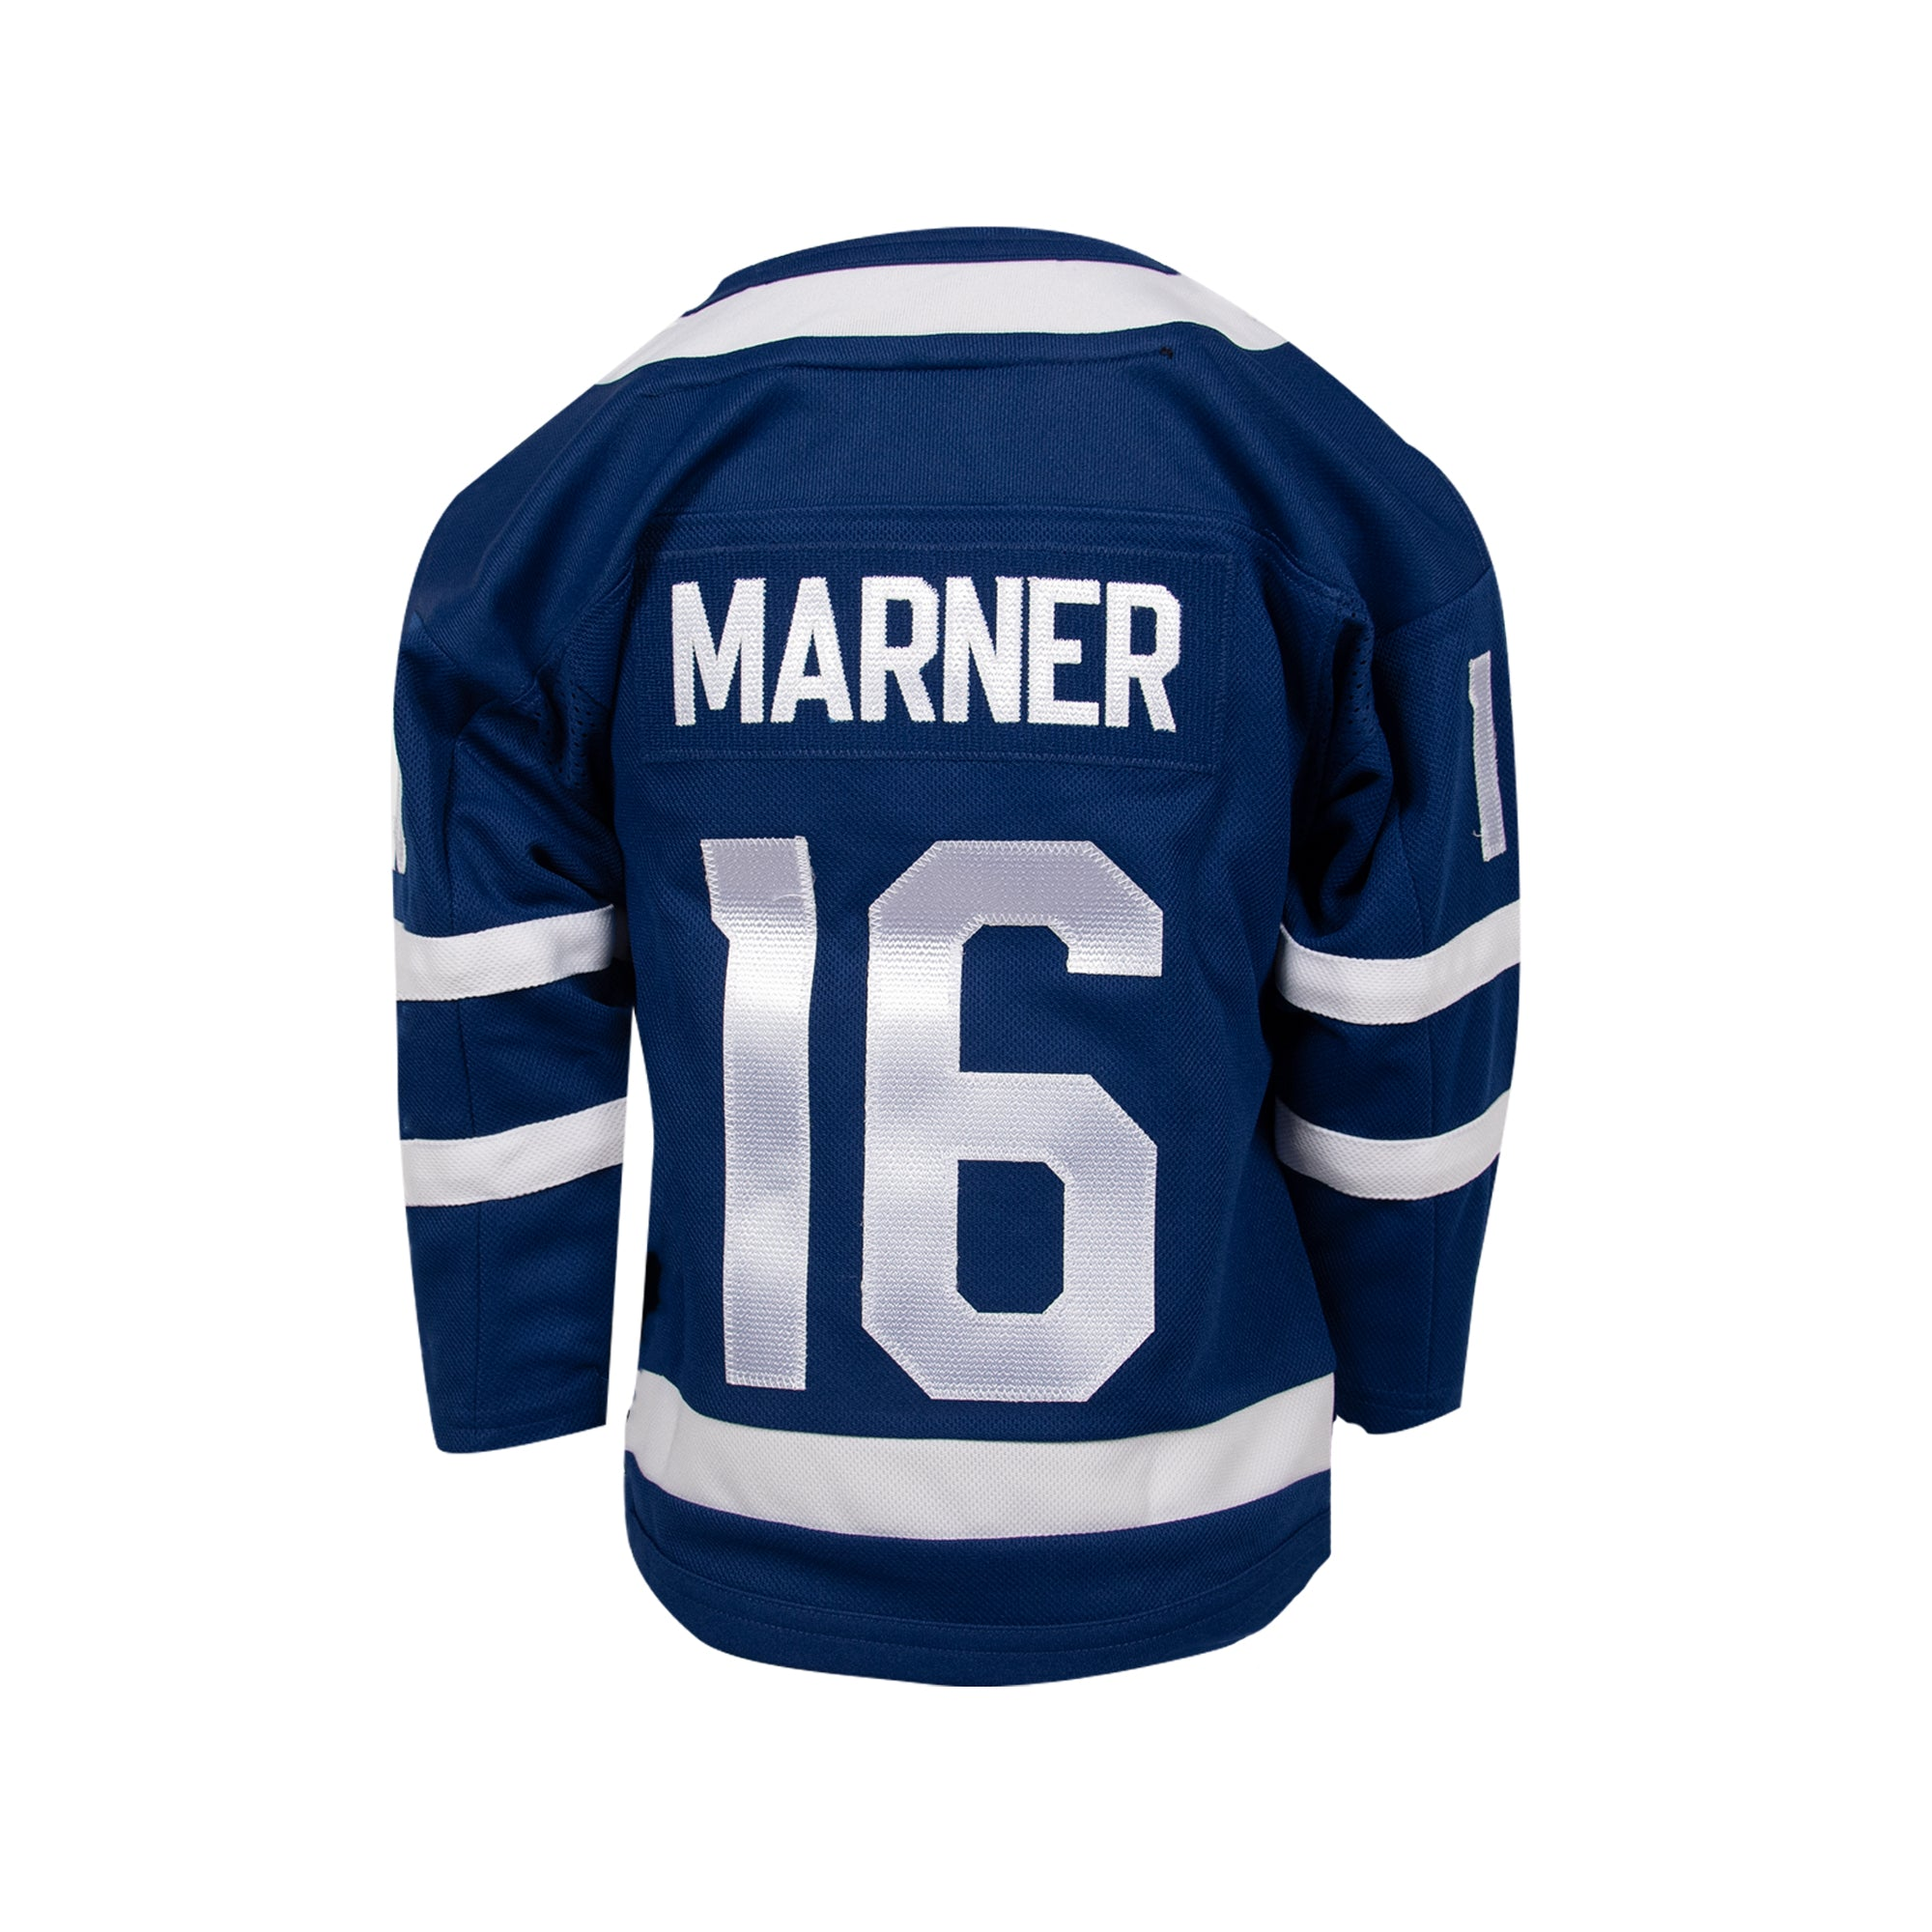 Maple Leafs Kids Home Jersey - MARNER